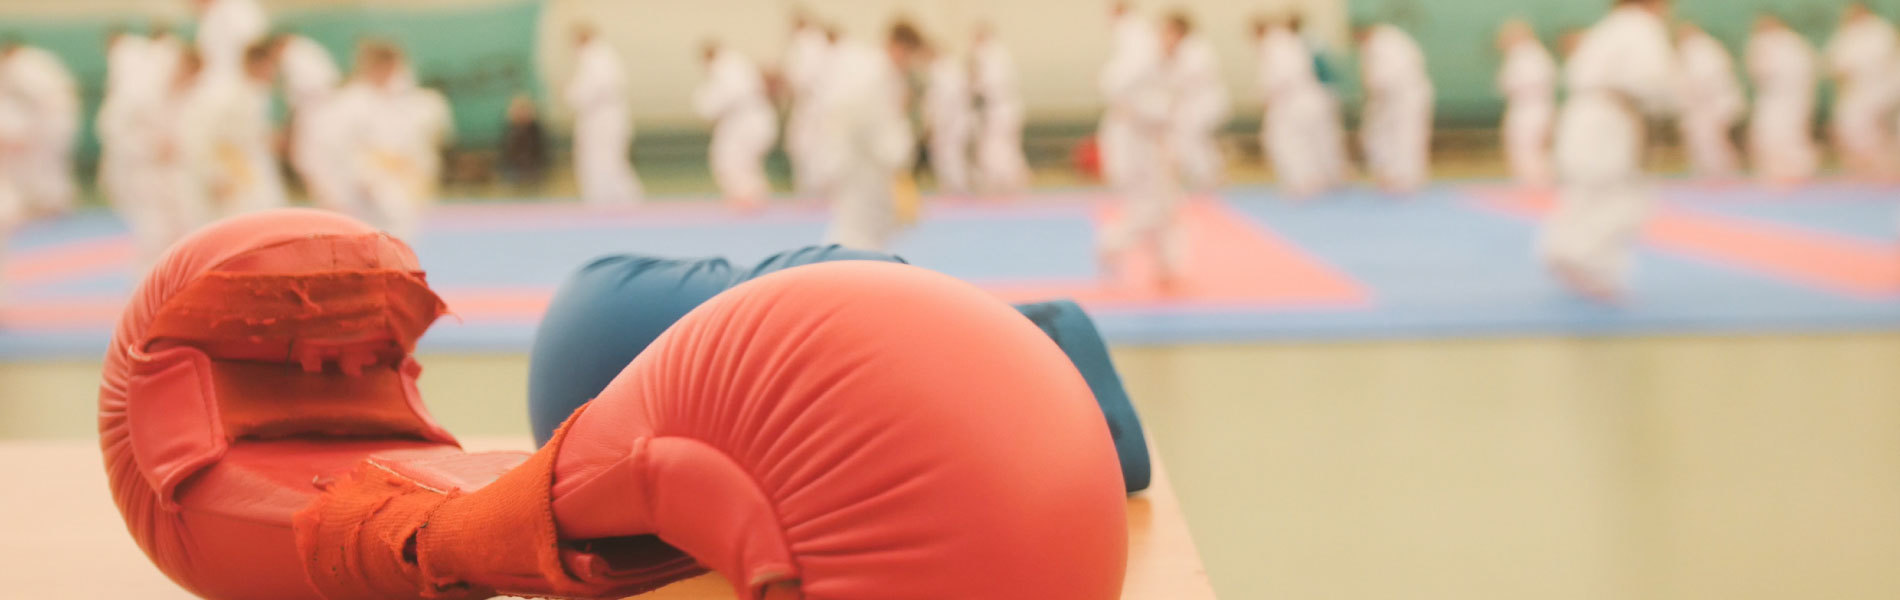 increasing_Safety_in_Martial_Arts_Classes_without_Losing_Focus_1900x600.jpg